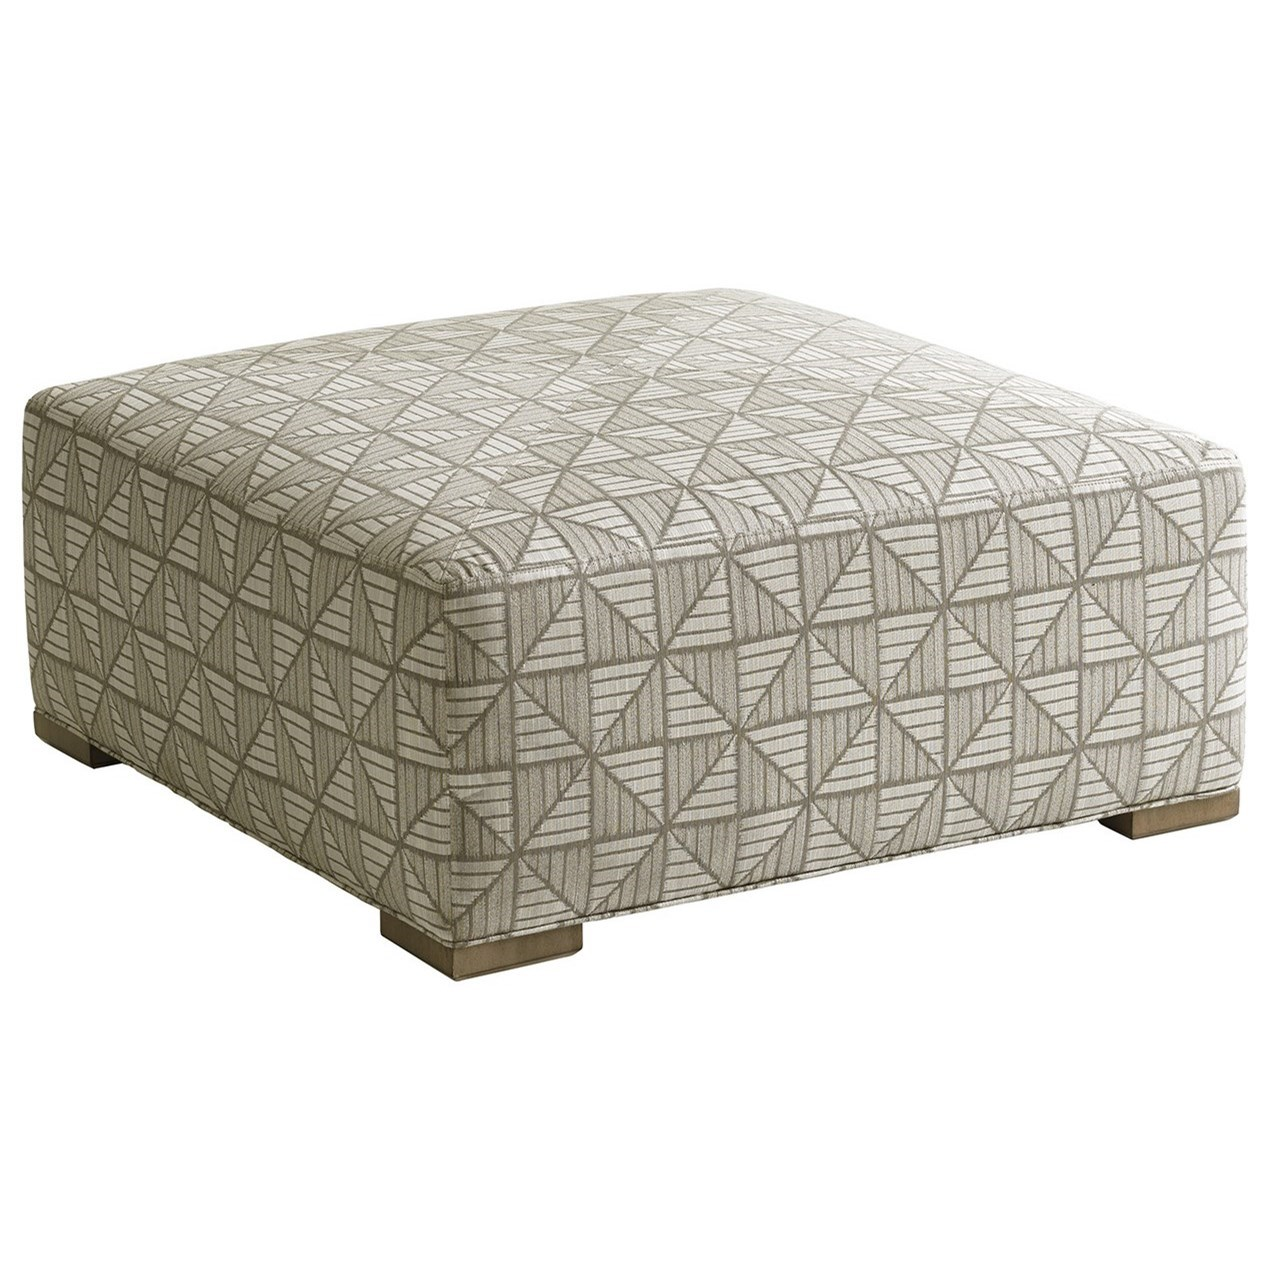 Shadow Play Melina Cocktail Ottoman by Lexington at Jacksonville Furniture Mart